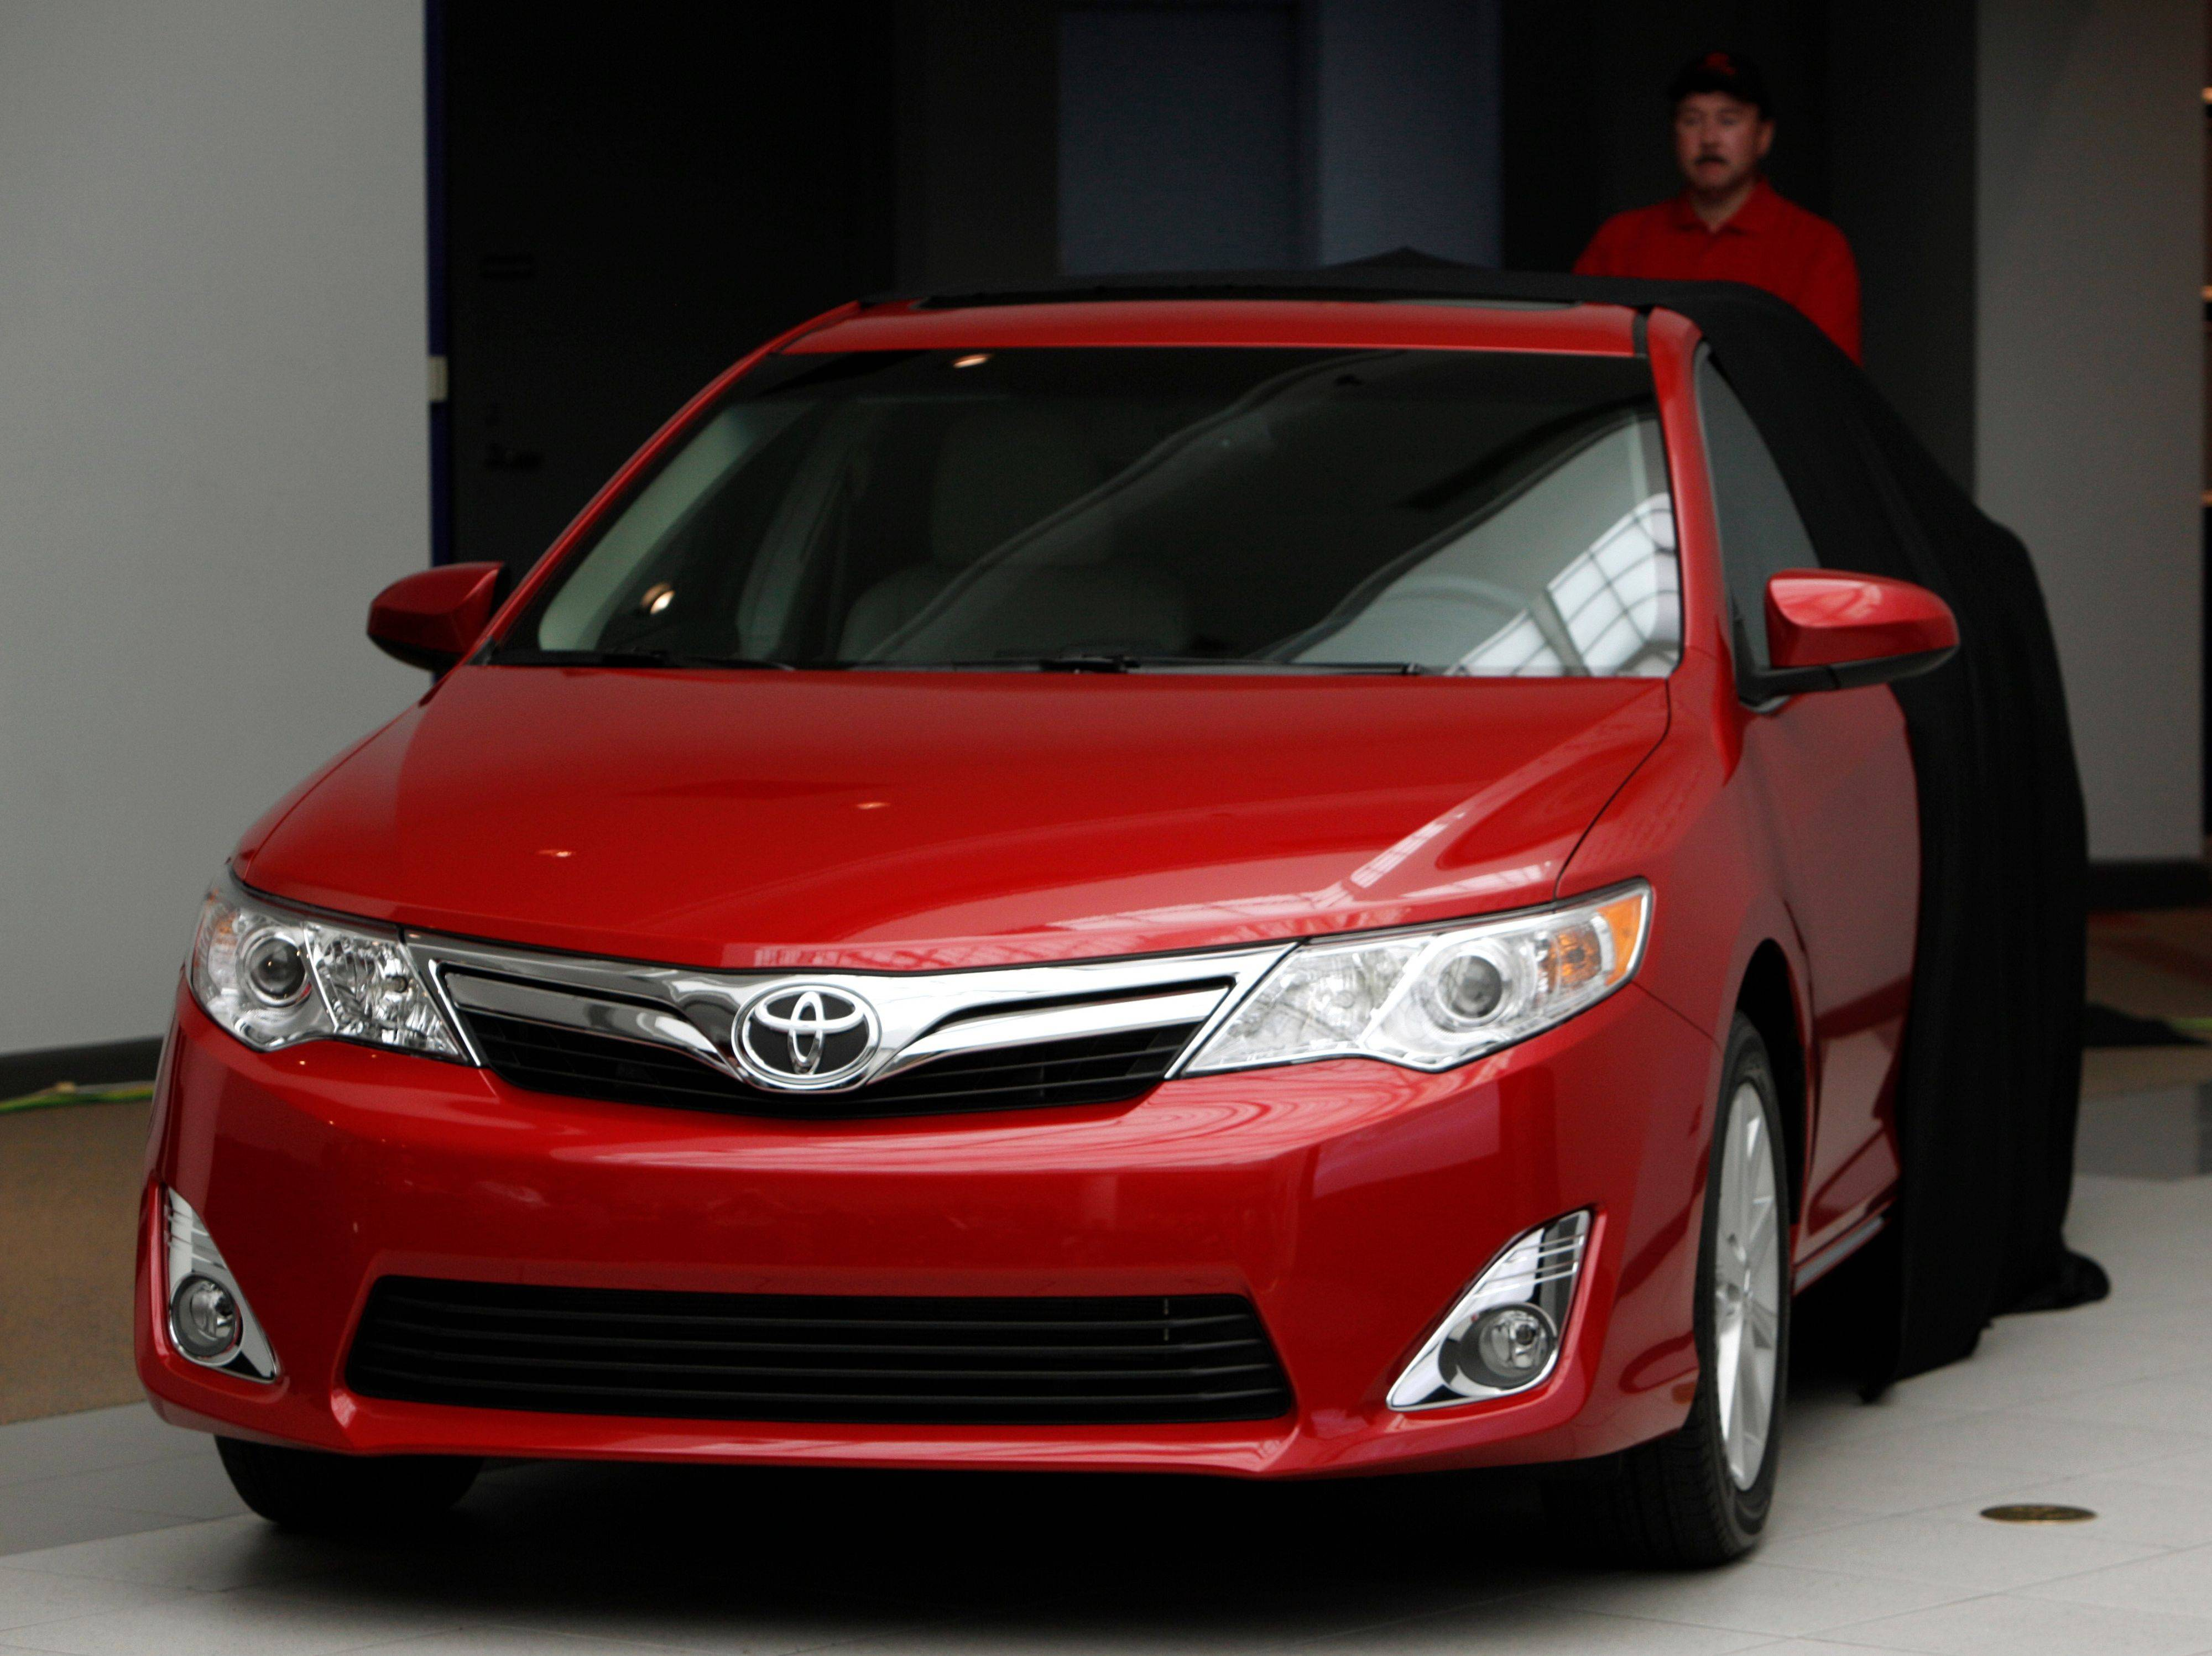 The 2012 Toyota Camry is unveiled during a news conference in Dearborn, Mich., Tuesday. While it promises new technology and other upgrades, America's best-selling car faces a fight to stay on top with its first redesign of the Camry in five years.